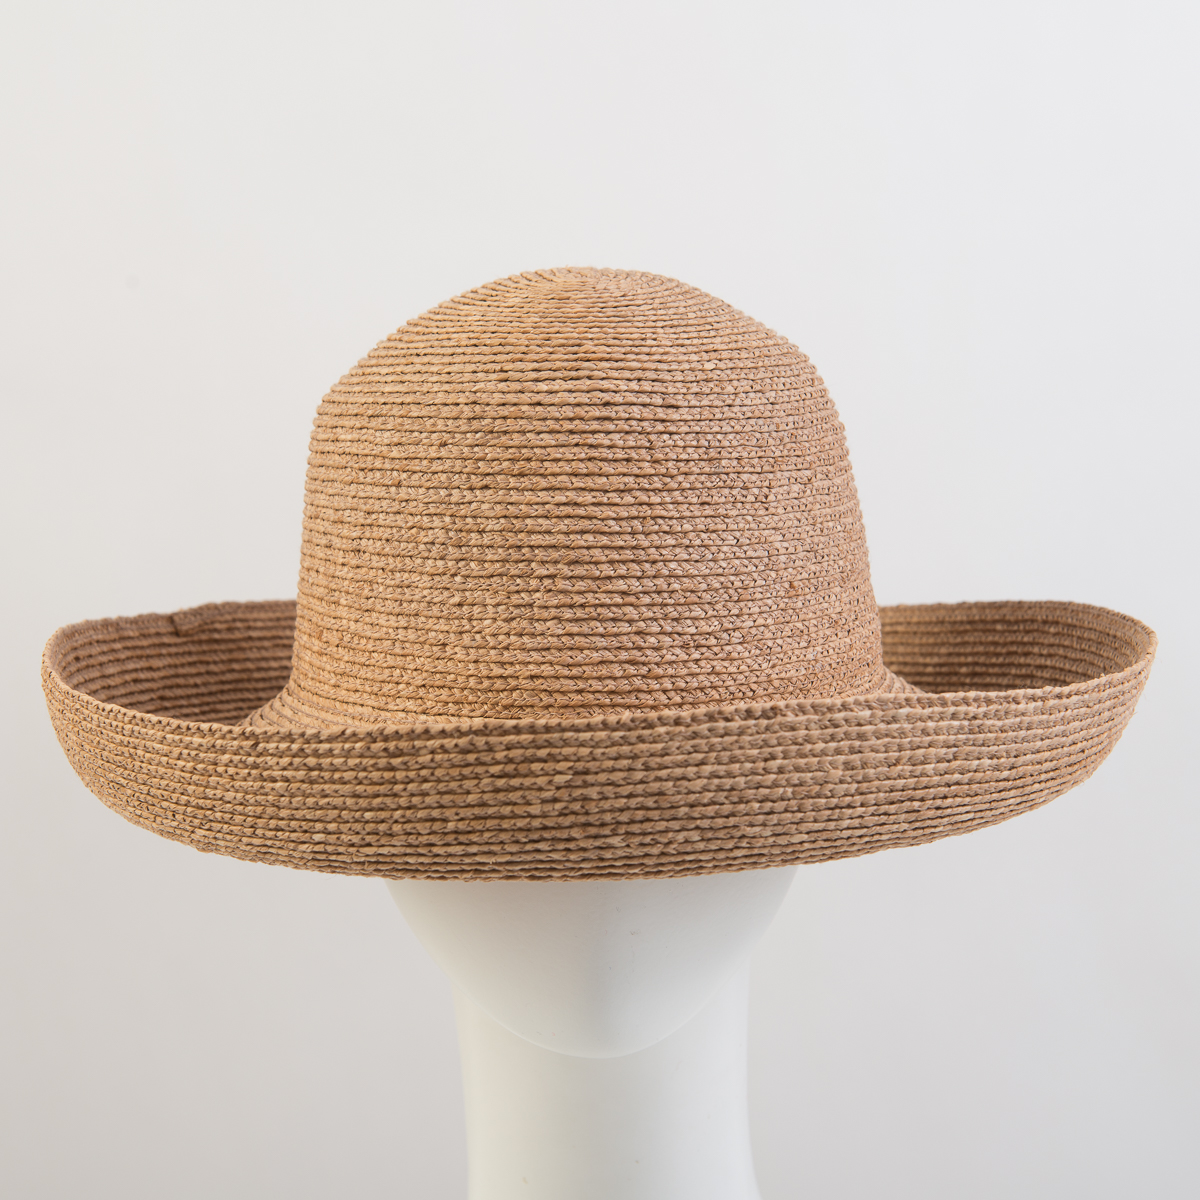 Tea Montana Raffia Blocked Plain Hat Base